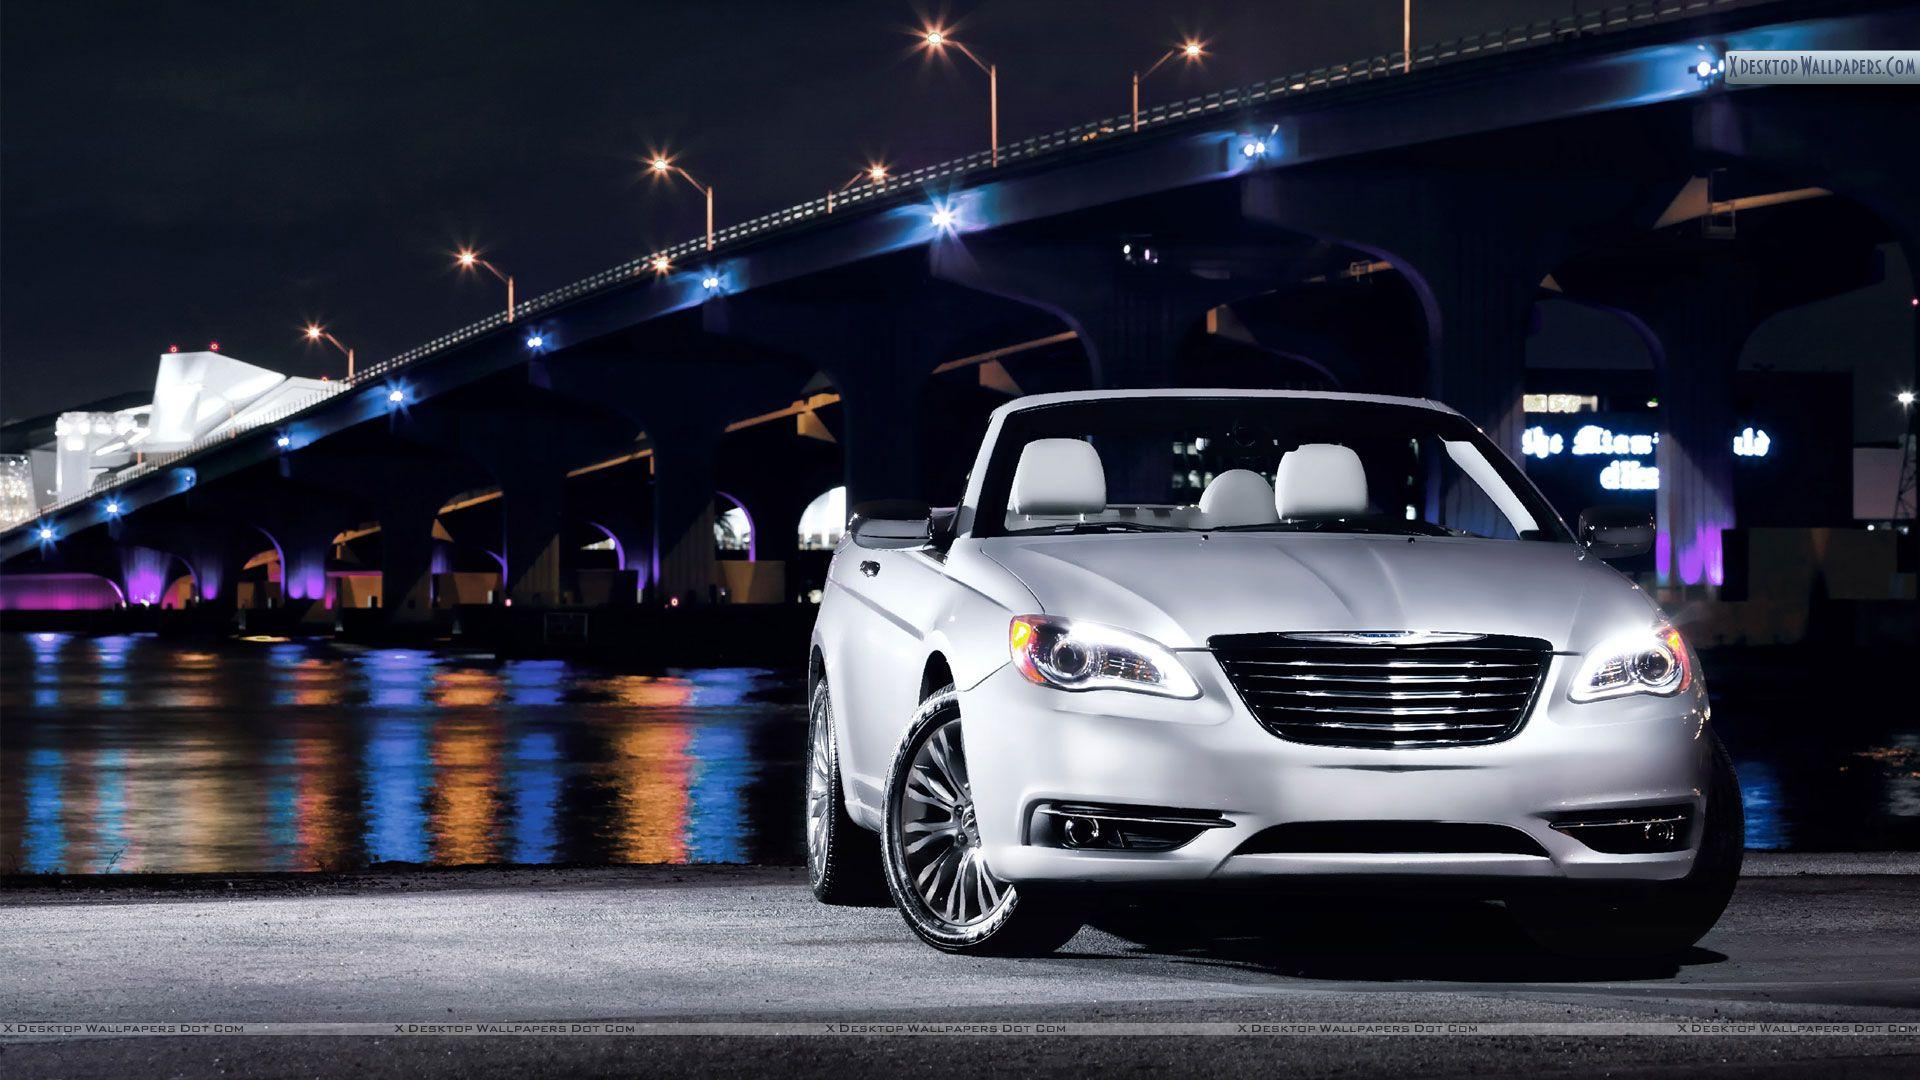 Chrysler 200 Wallpapers, Photos & Image in HD